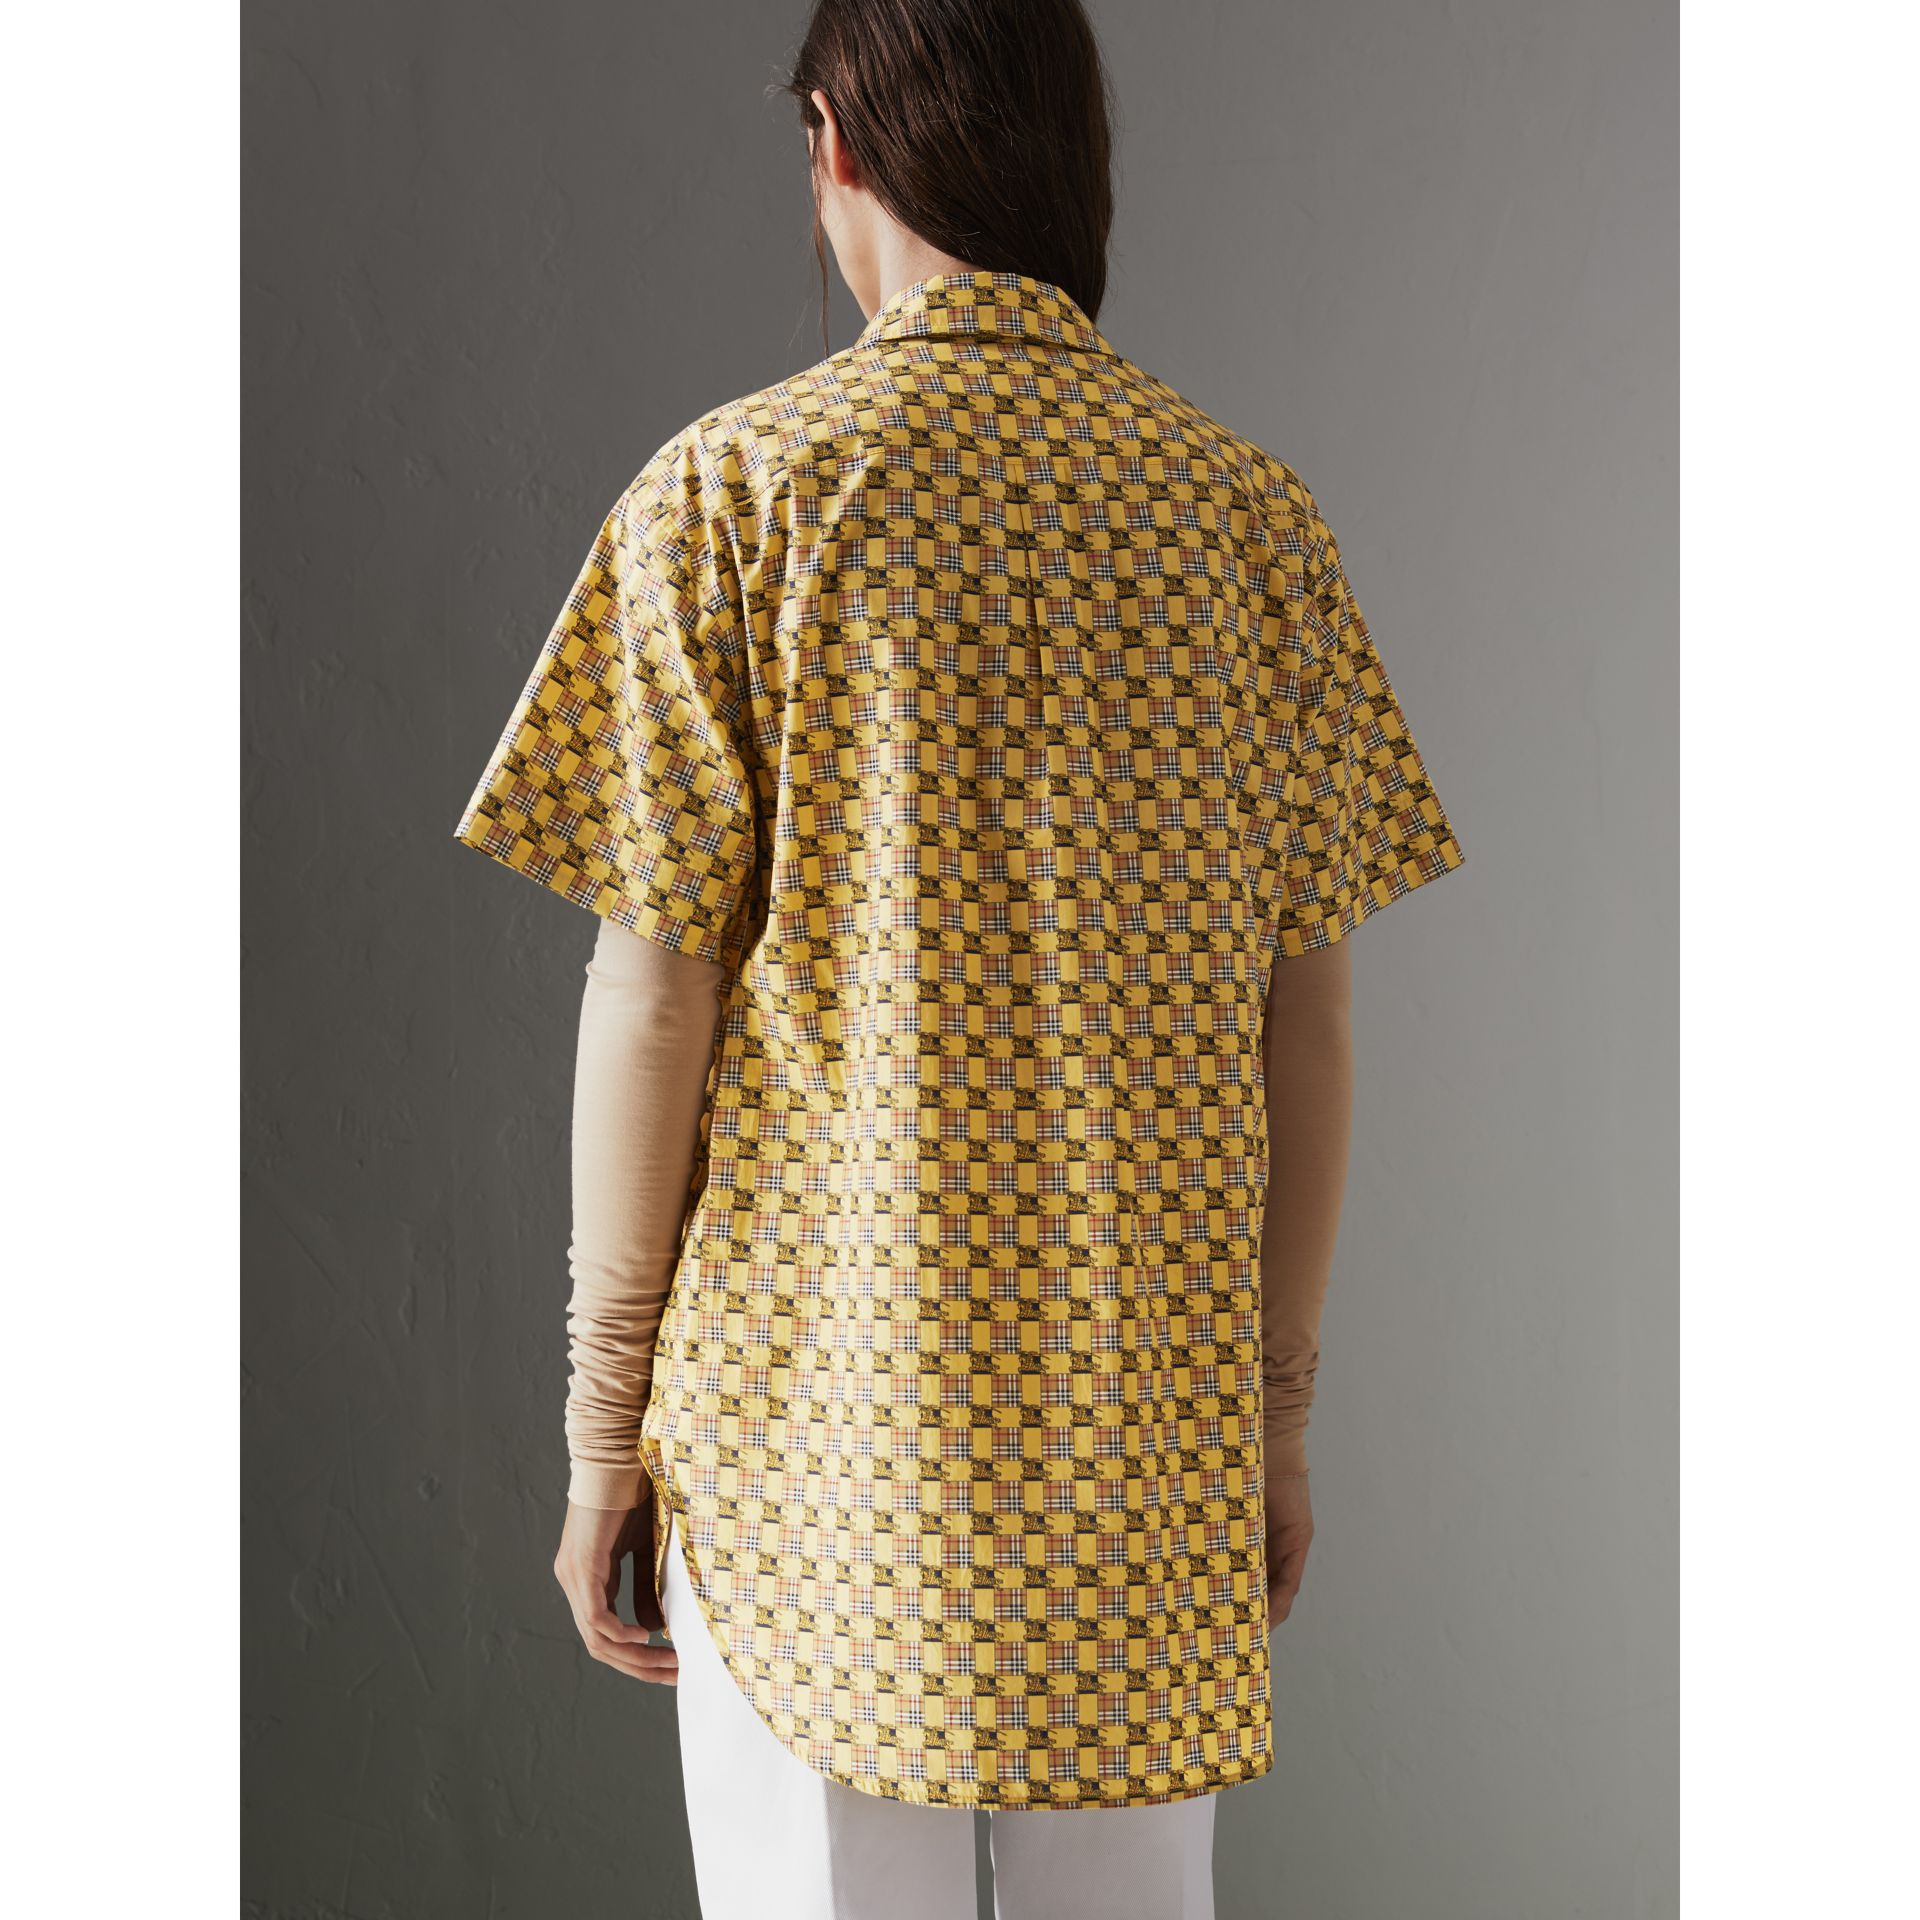 Short-sleeve Tiled Archive Print Cotton Shirt in Yellow - Women | Burberry United States - gallery image 2